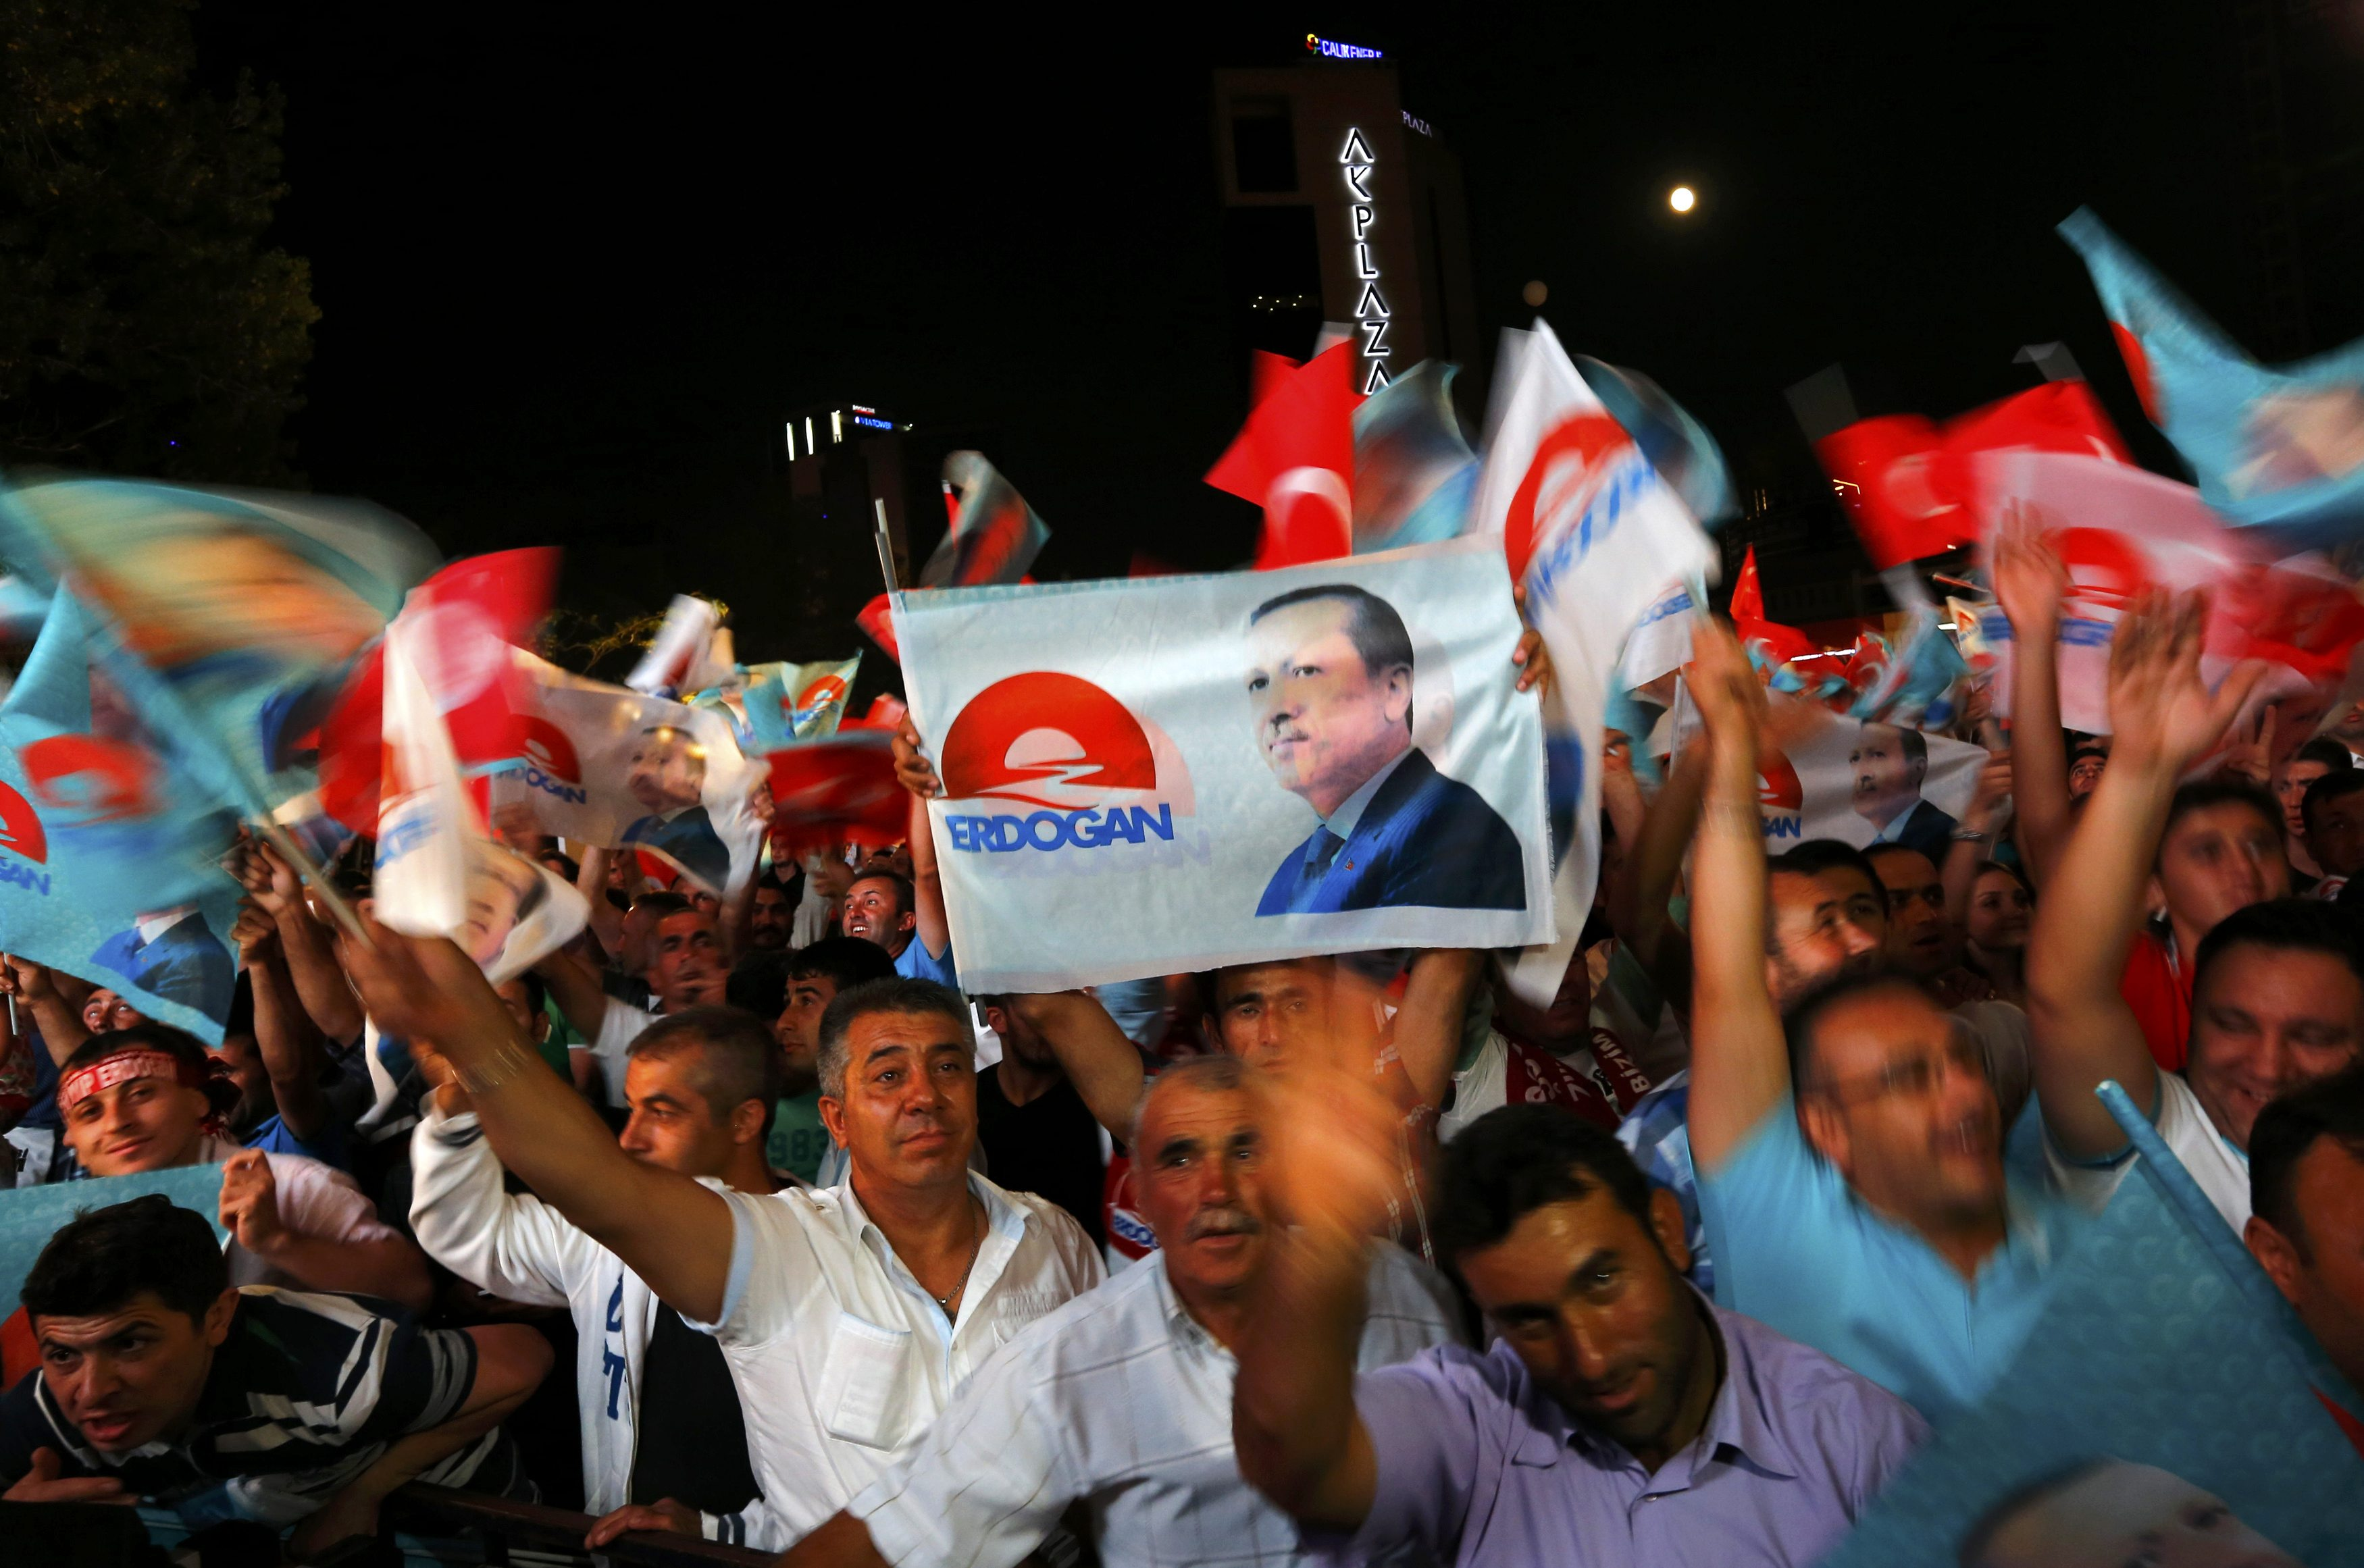 Supporters of Turkey's Prime Minister Tayyip Erdogan celebrate his election victory in front of the party headquarters in Ankara August 10, 2014.